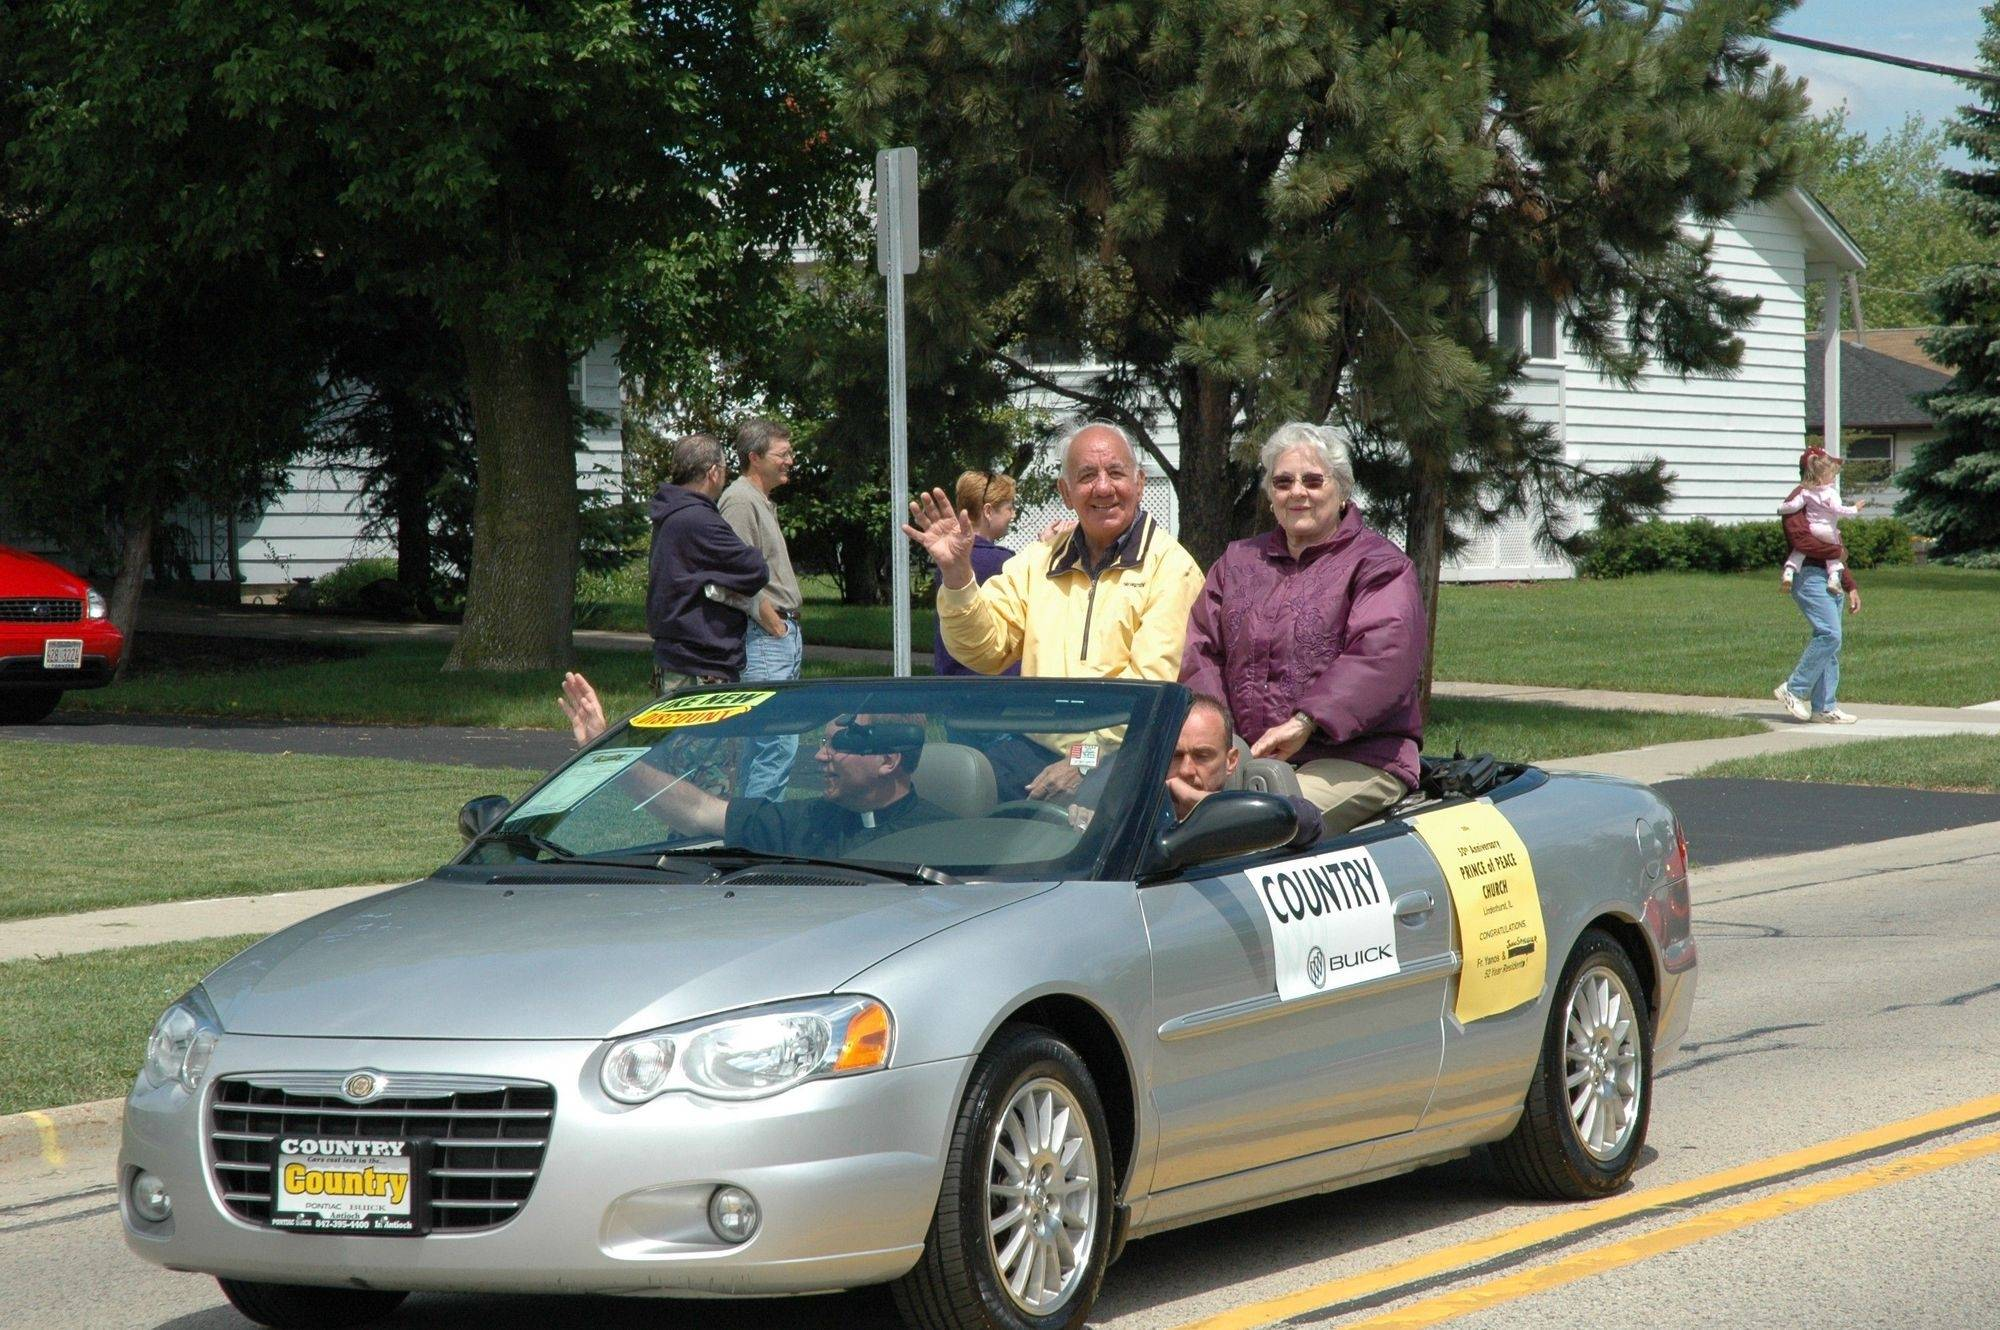 Longtime village of Lindenhurst Treasurer Art Neubauer and his wife Donna ride in the town's 50th Anniversary parade in 2006. Newbauer has been treasurer for almost as long as the village has existed.